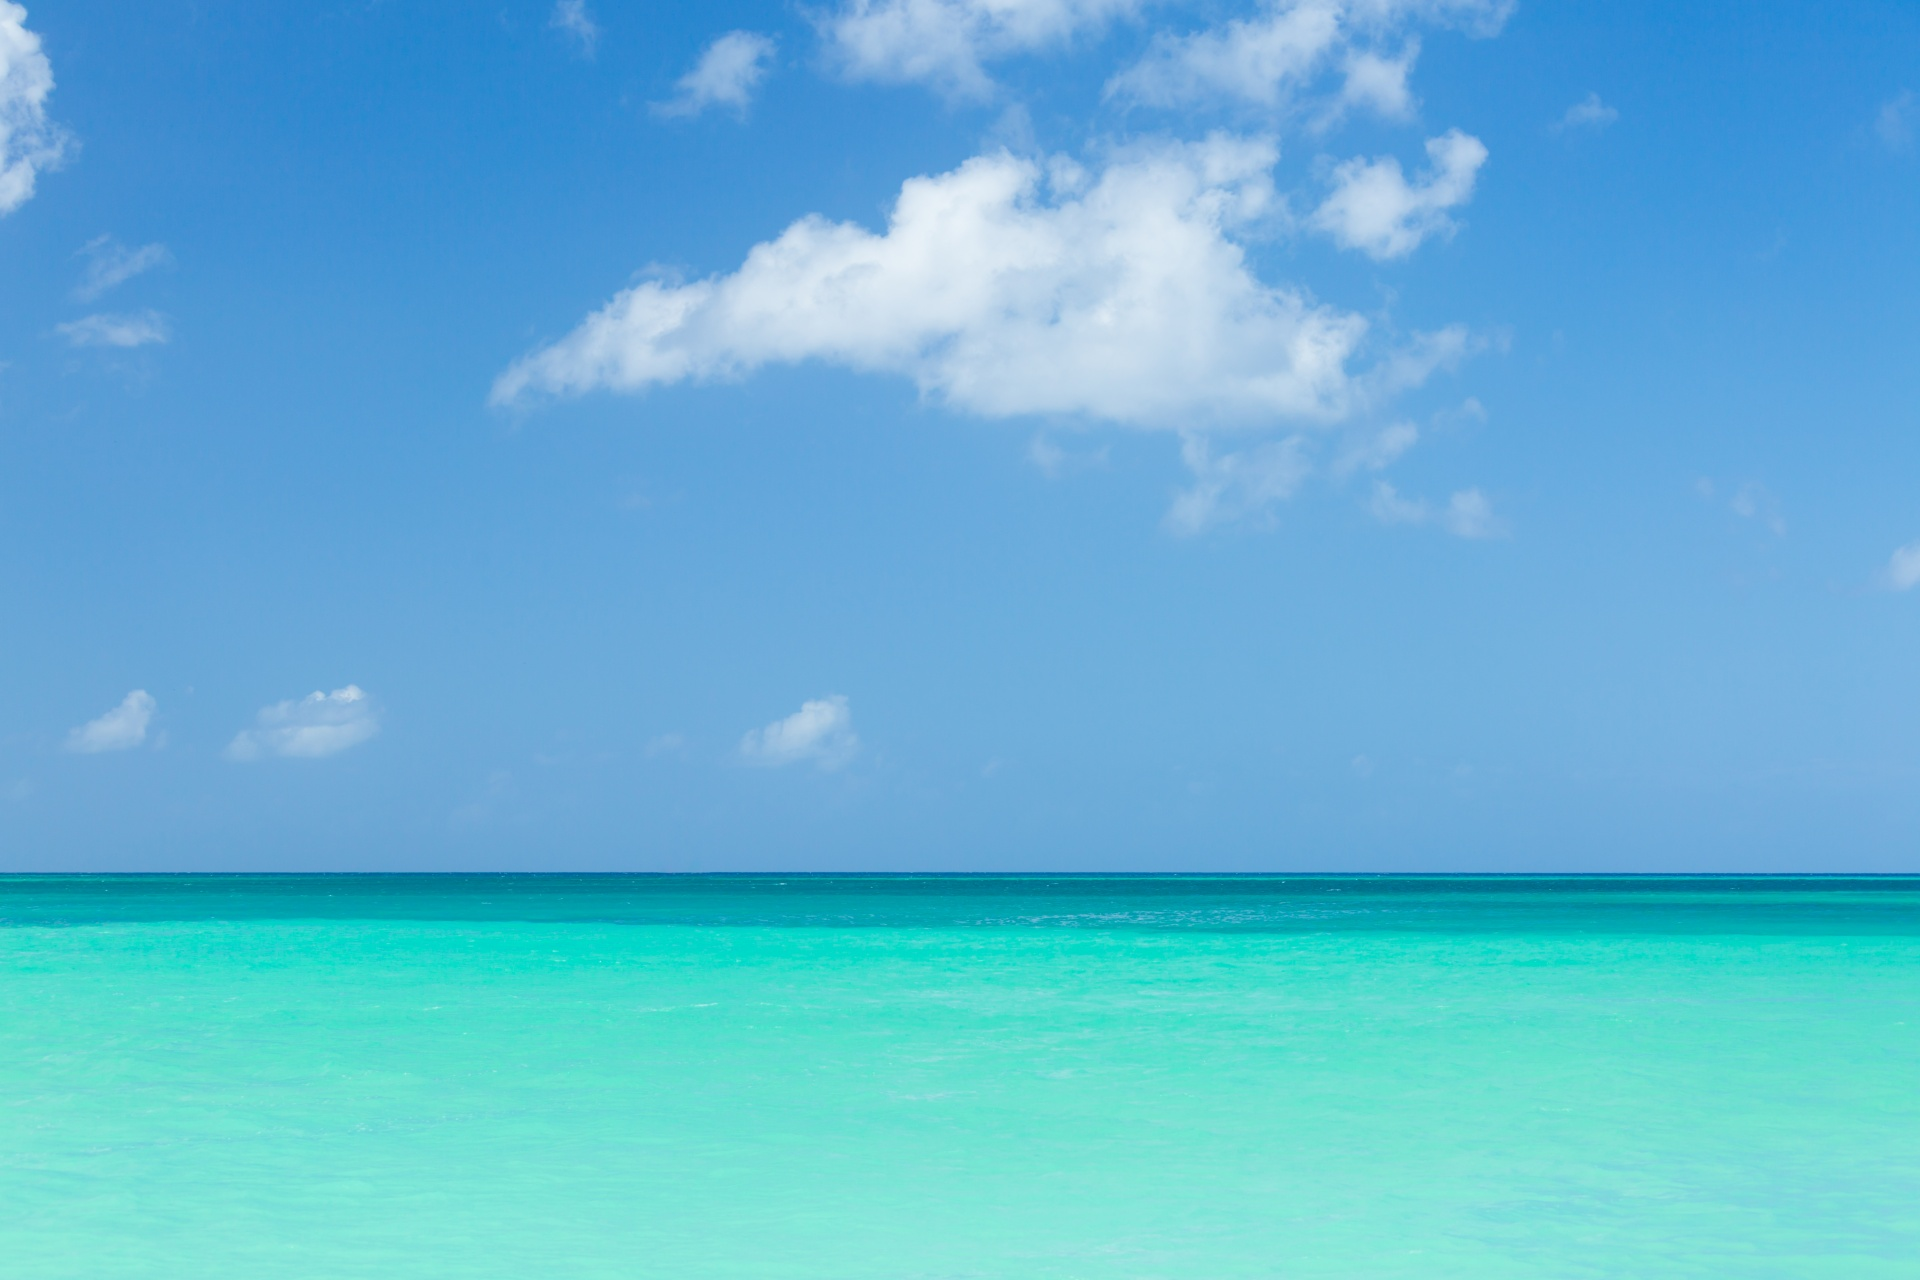 sea caribbean background photo #2141